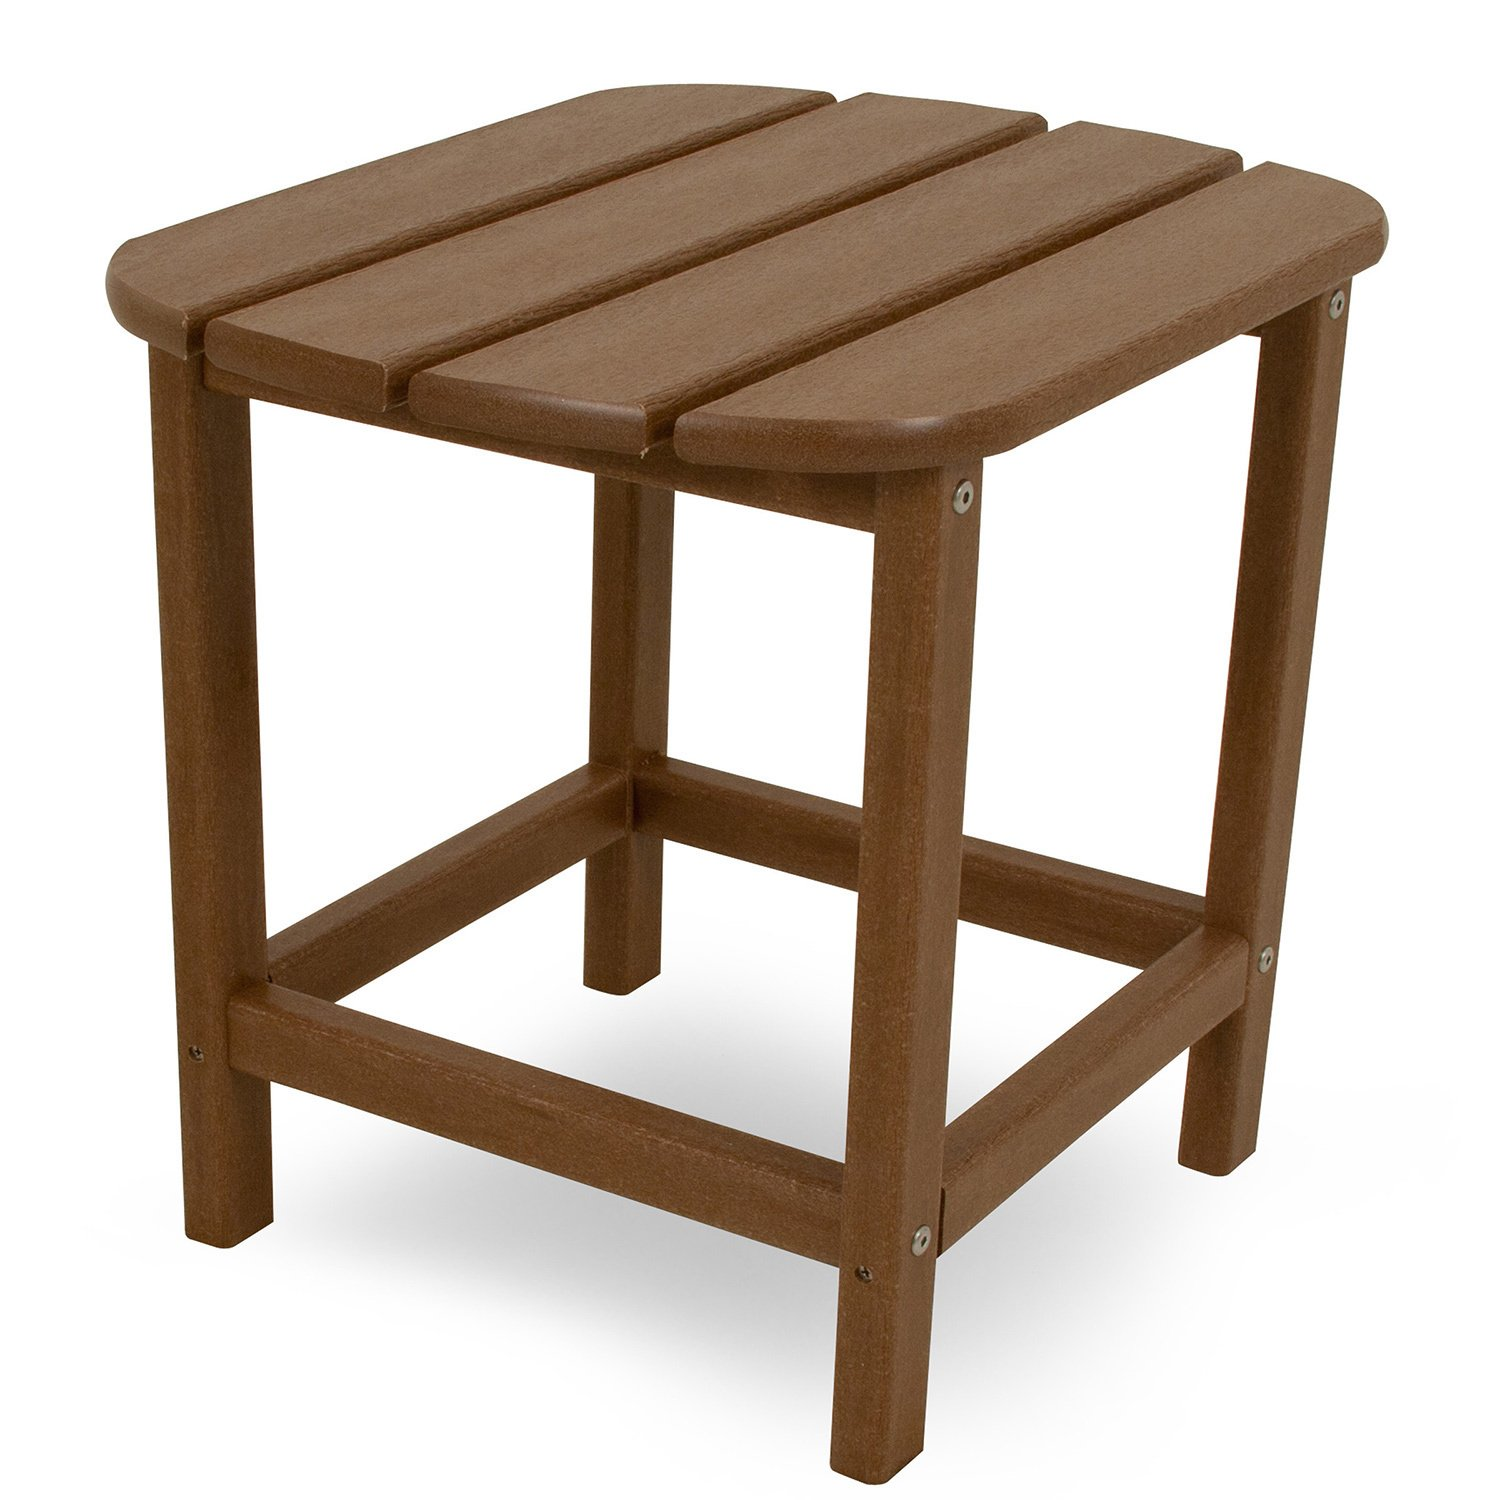 polywood south beach inch outdoor side table free shipping wood today garden furniture storage cherry dining and chairs ethan allen nesting tables modern coffee sets antique ship